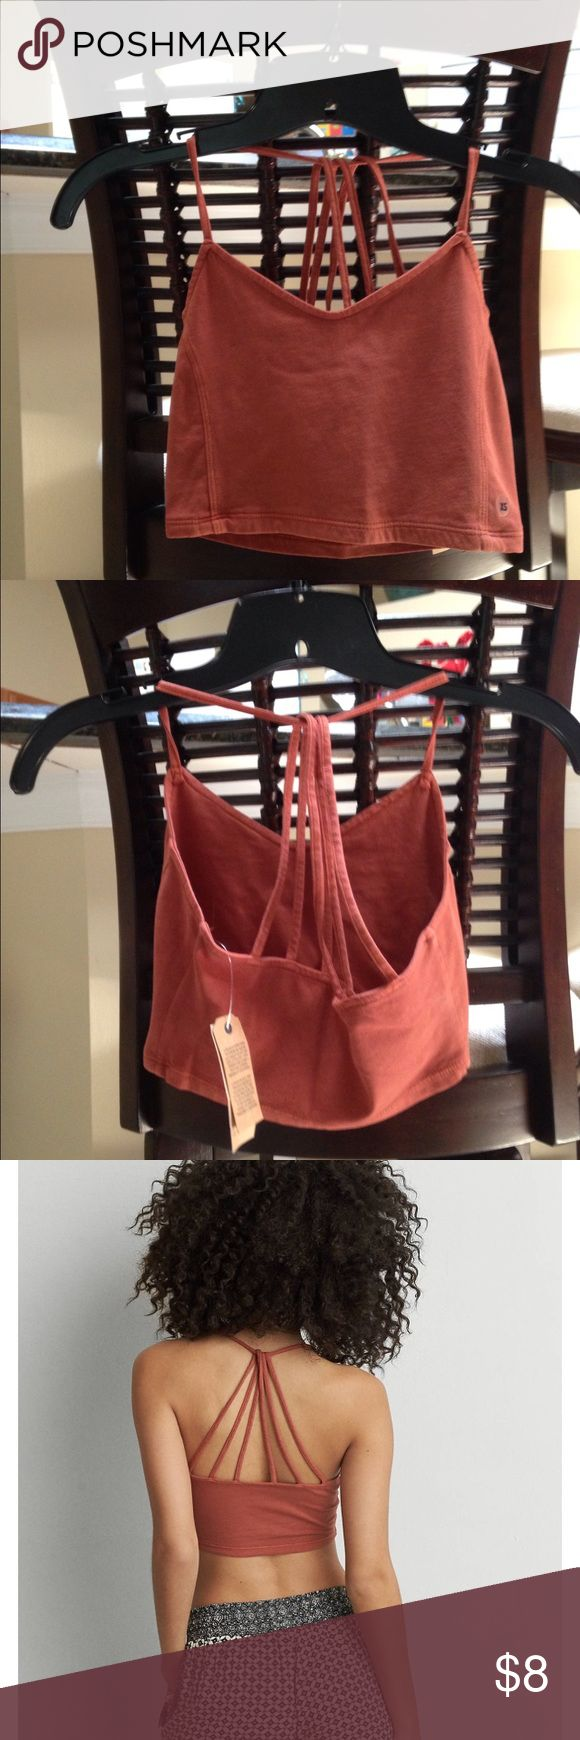 American Eagle This is a American Eagle Bralette in a size med nwt never worn . No trades other apps or PayPal , I do take offers and bundle my discount is 2/20% American Eagle Outfitters Tops